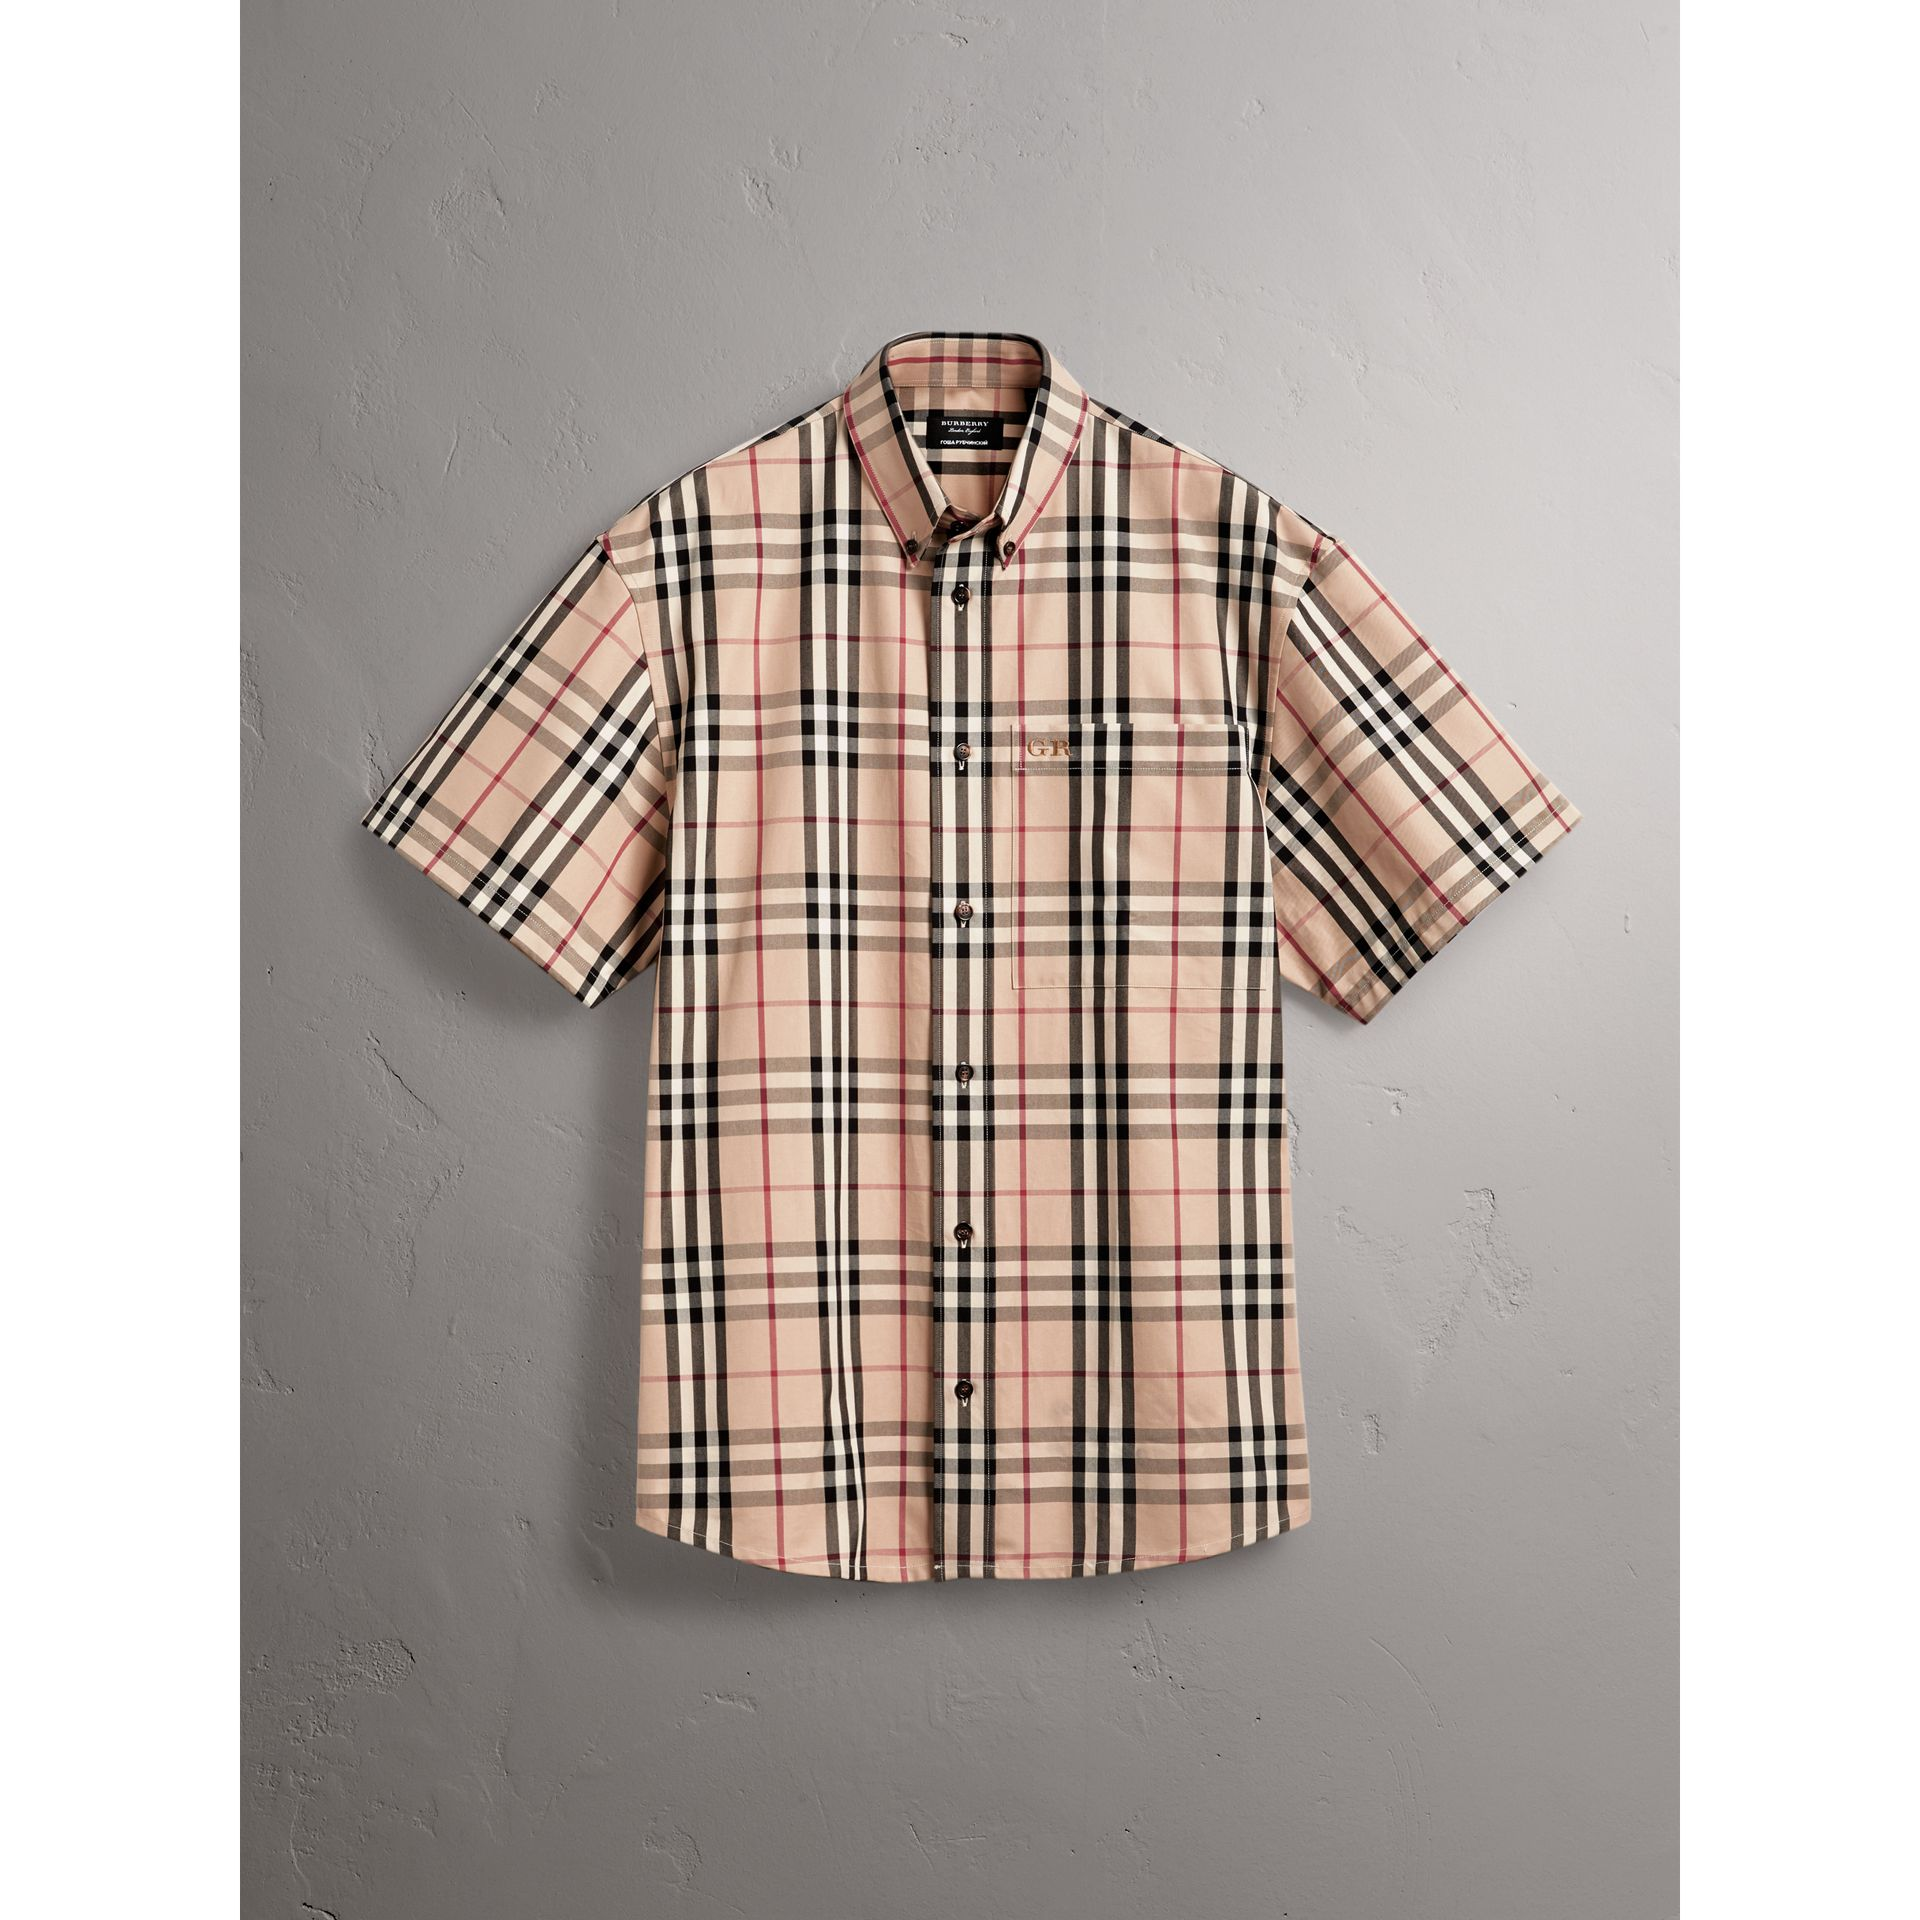 Gosha x Burberry Short-sleeve Check Shirt in Honey | Burberry - gallery image 4